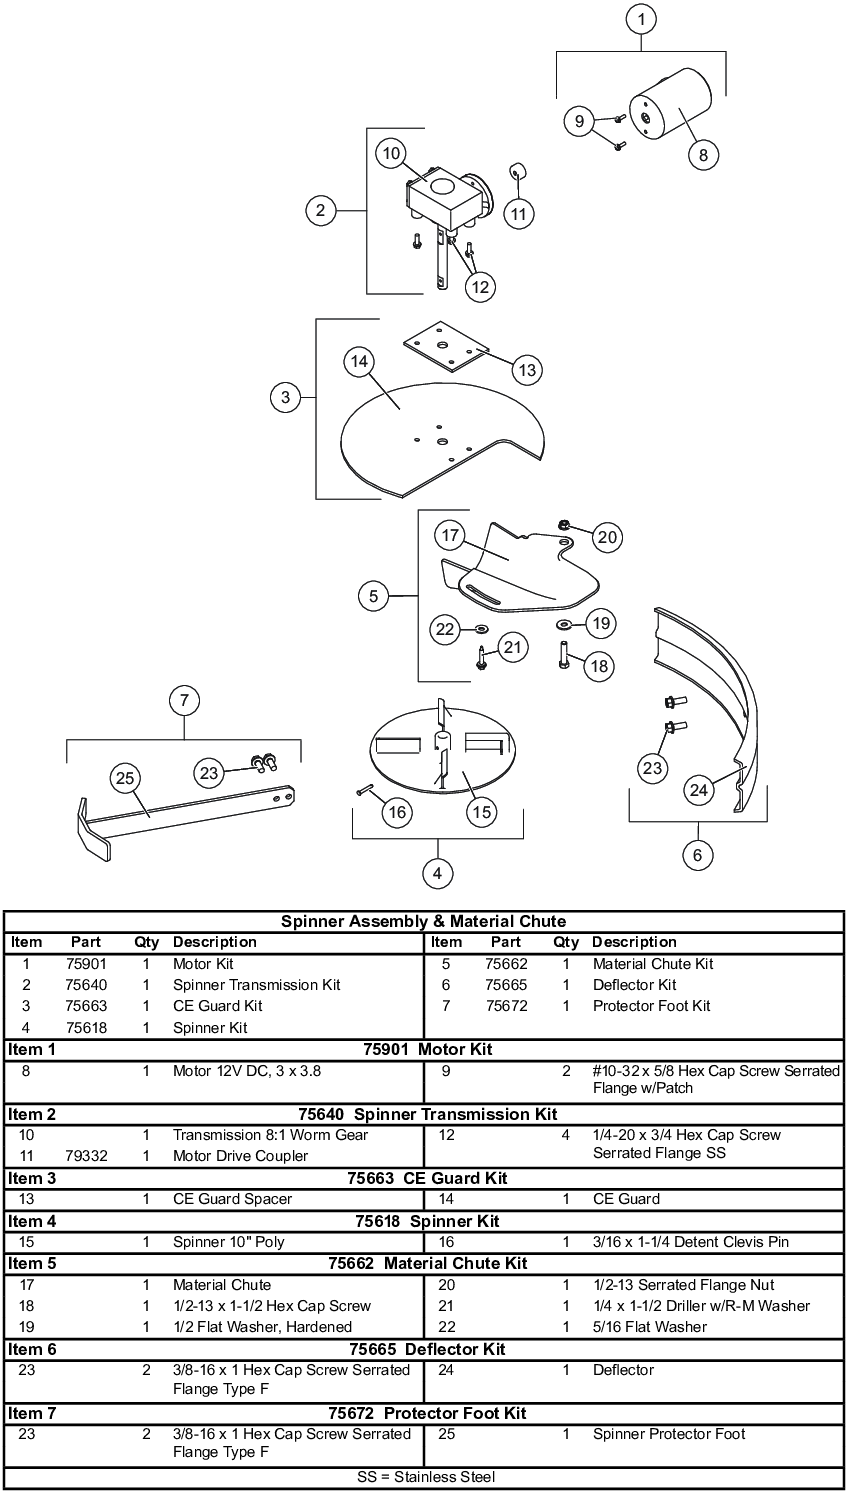 Fisher Speed-Caster 525 Spinner and Chute Parts Diagram